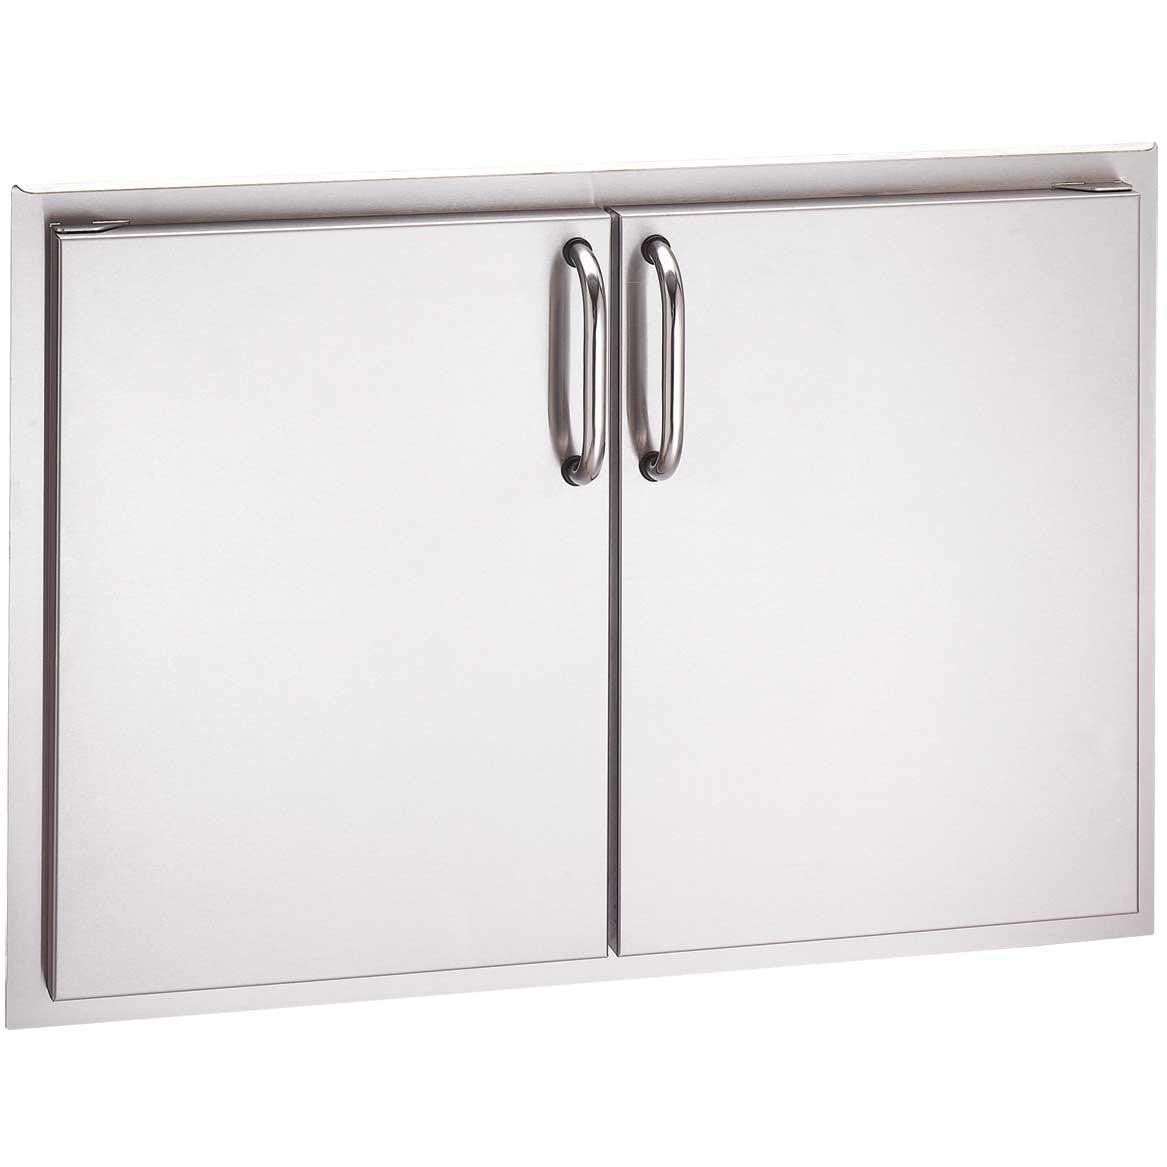 Fire Magic Select 30-Inch Double Access Door - 33930S